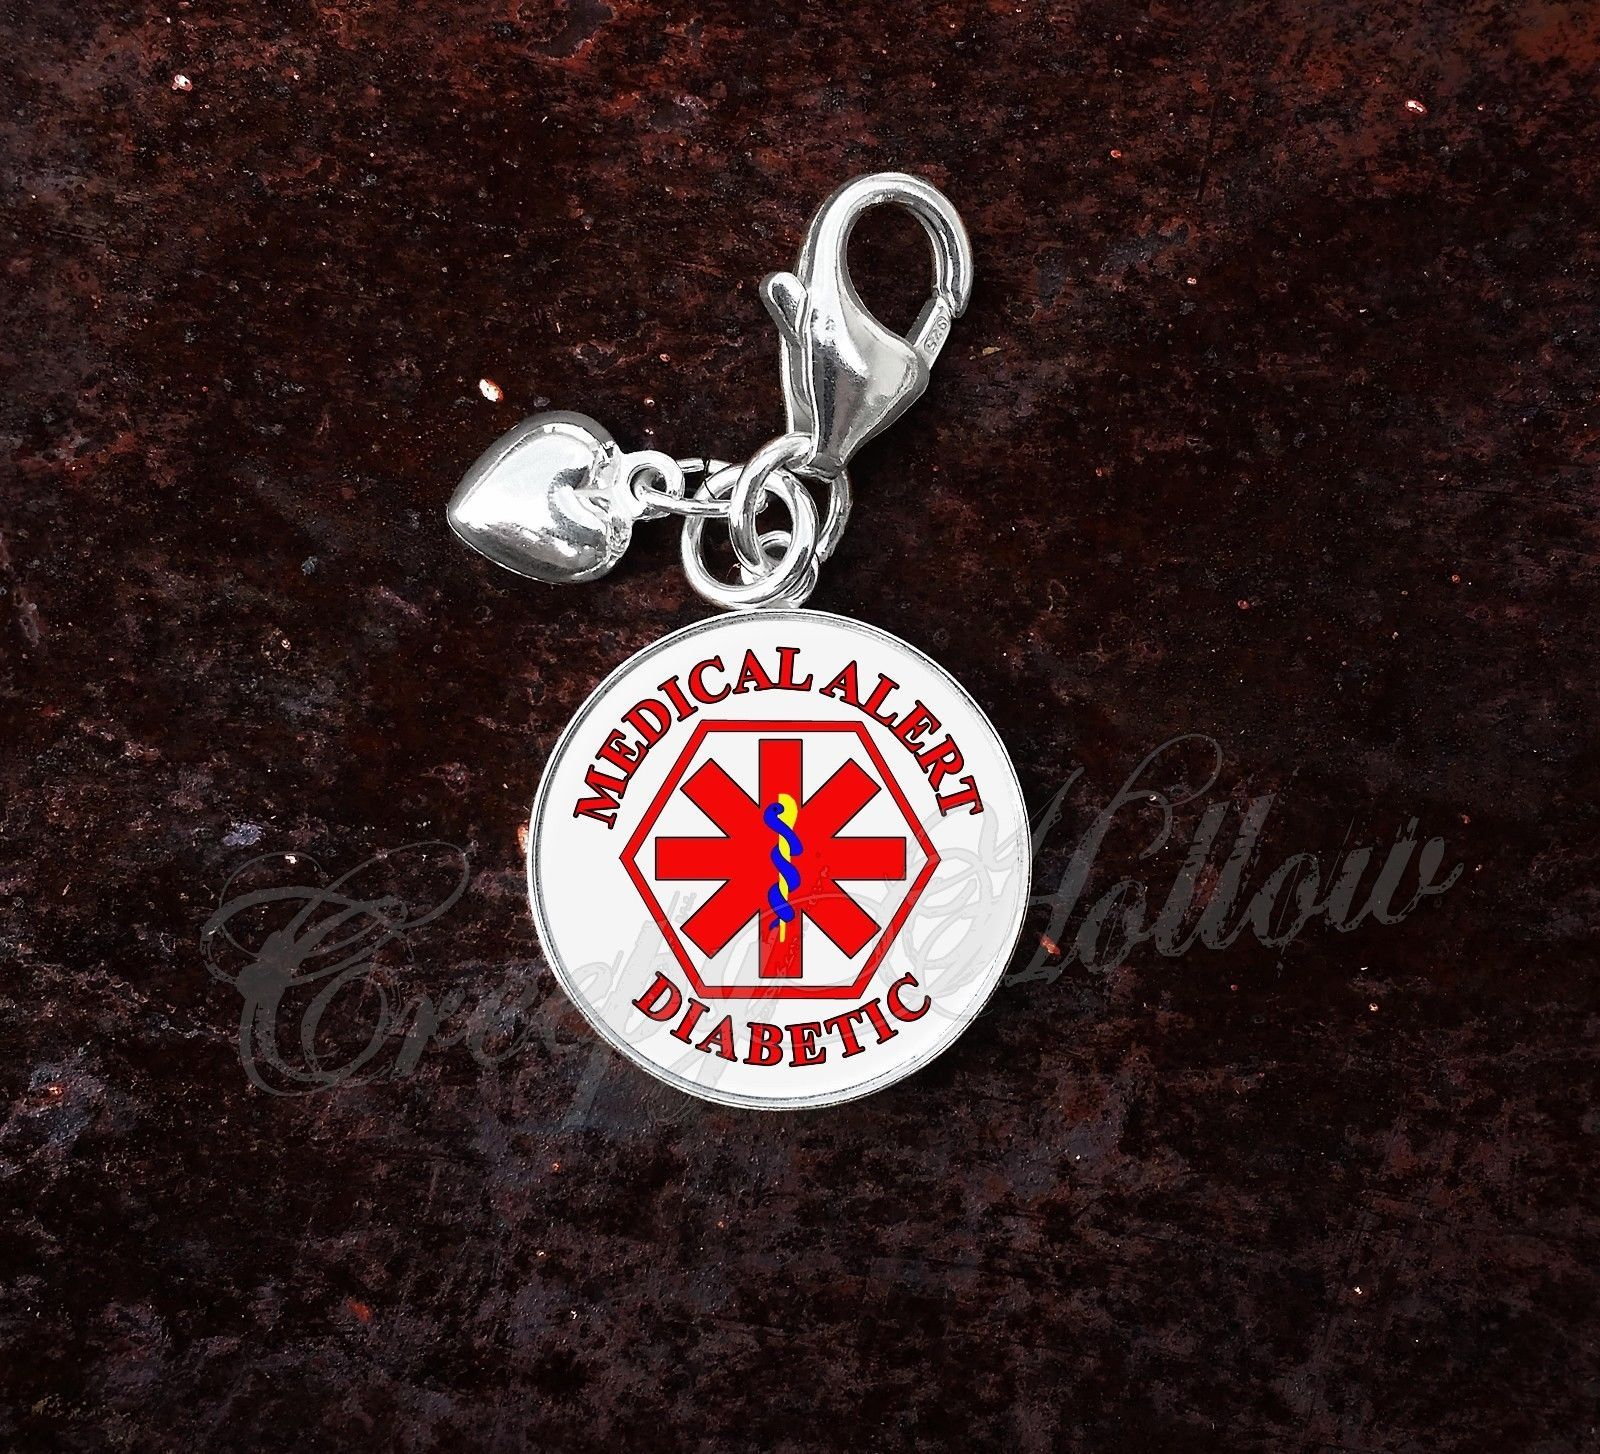 Primary image for 925 Sterling Silver Charm Diabetic Medical Alert Symbol Caduceus